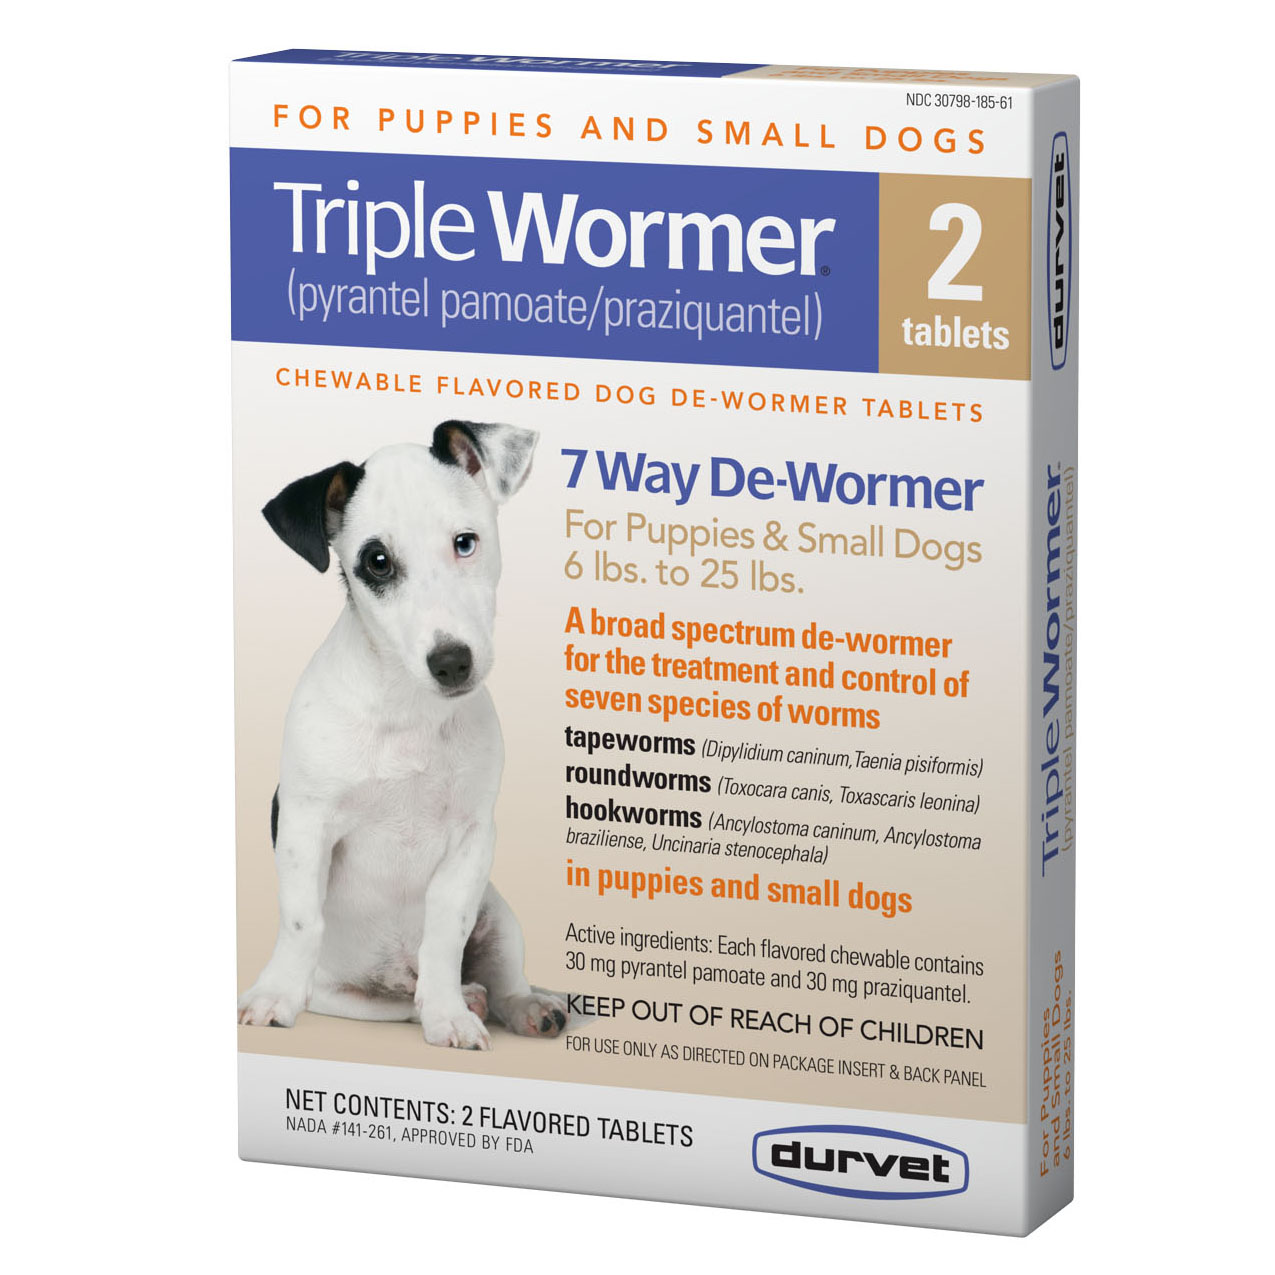 Murdochs Durvet Triple Wormer Chewable Tablets For Puppies Small Dogs